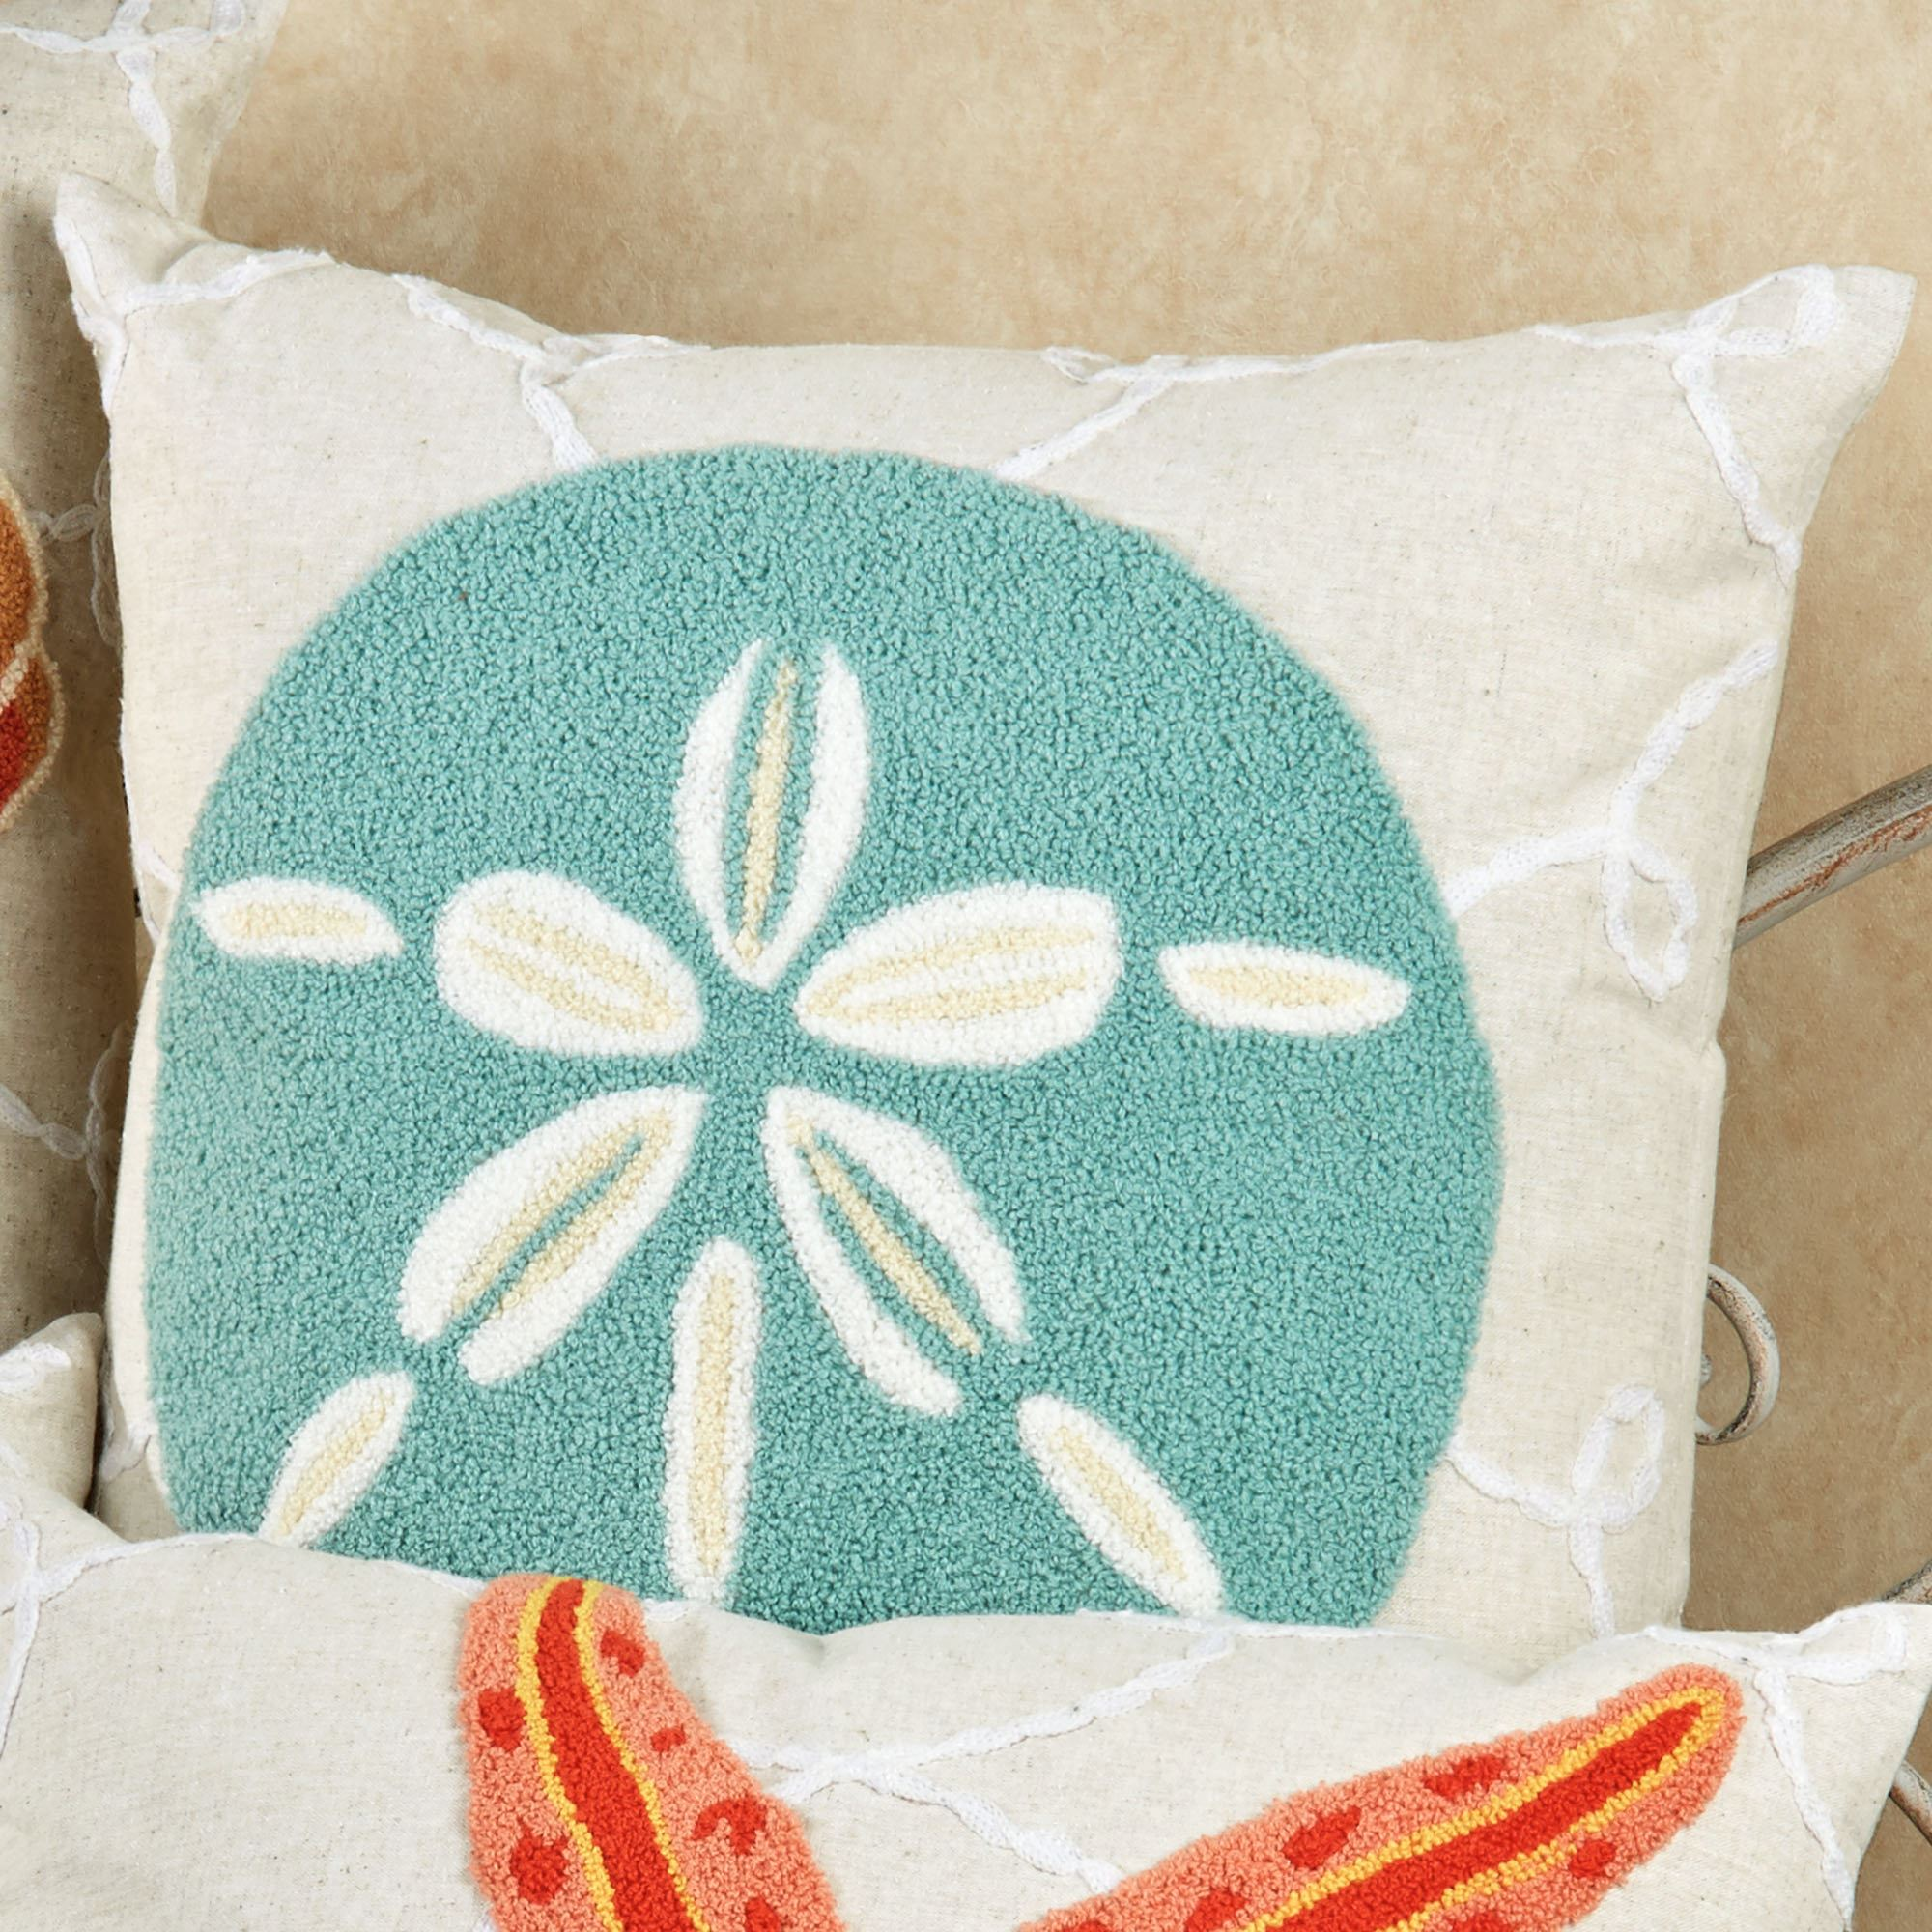 stitches diy pillows pillow easy beach doodles